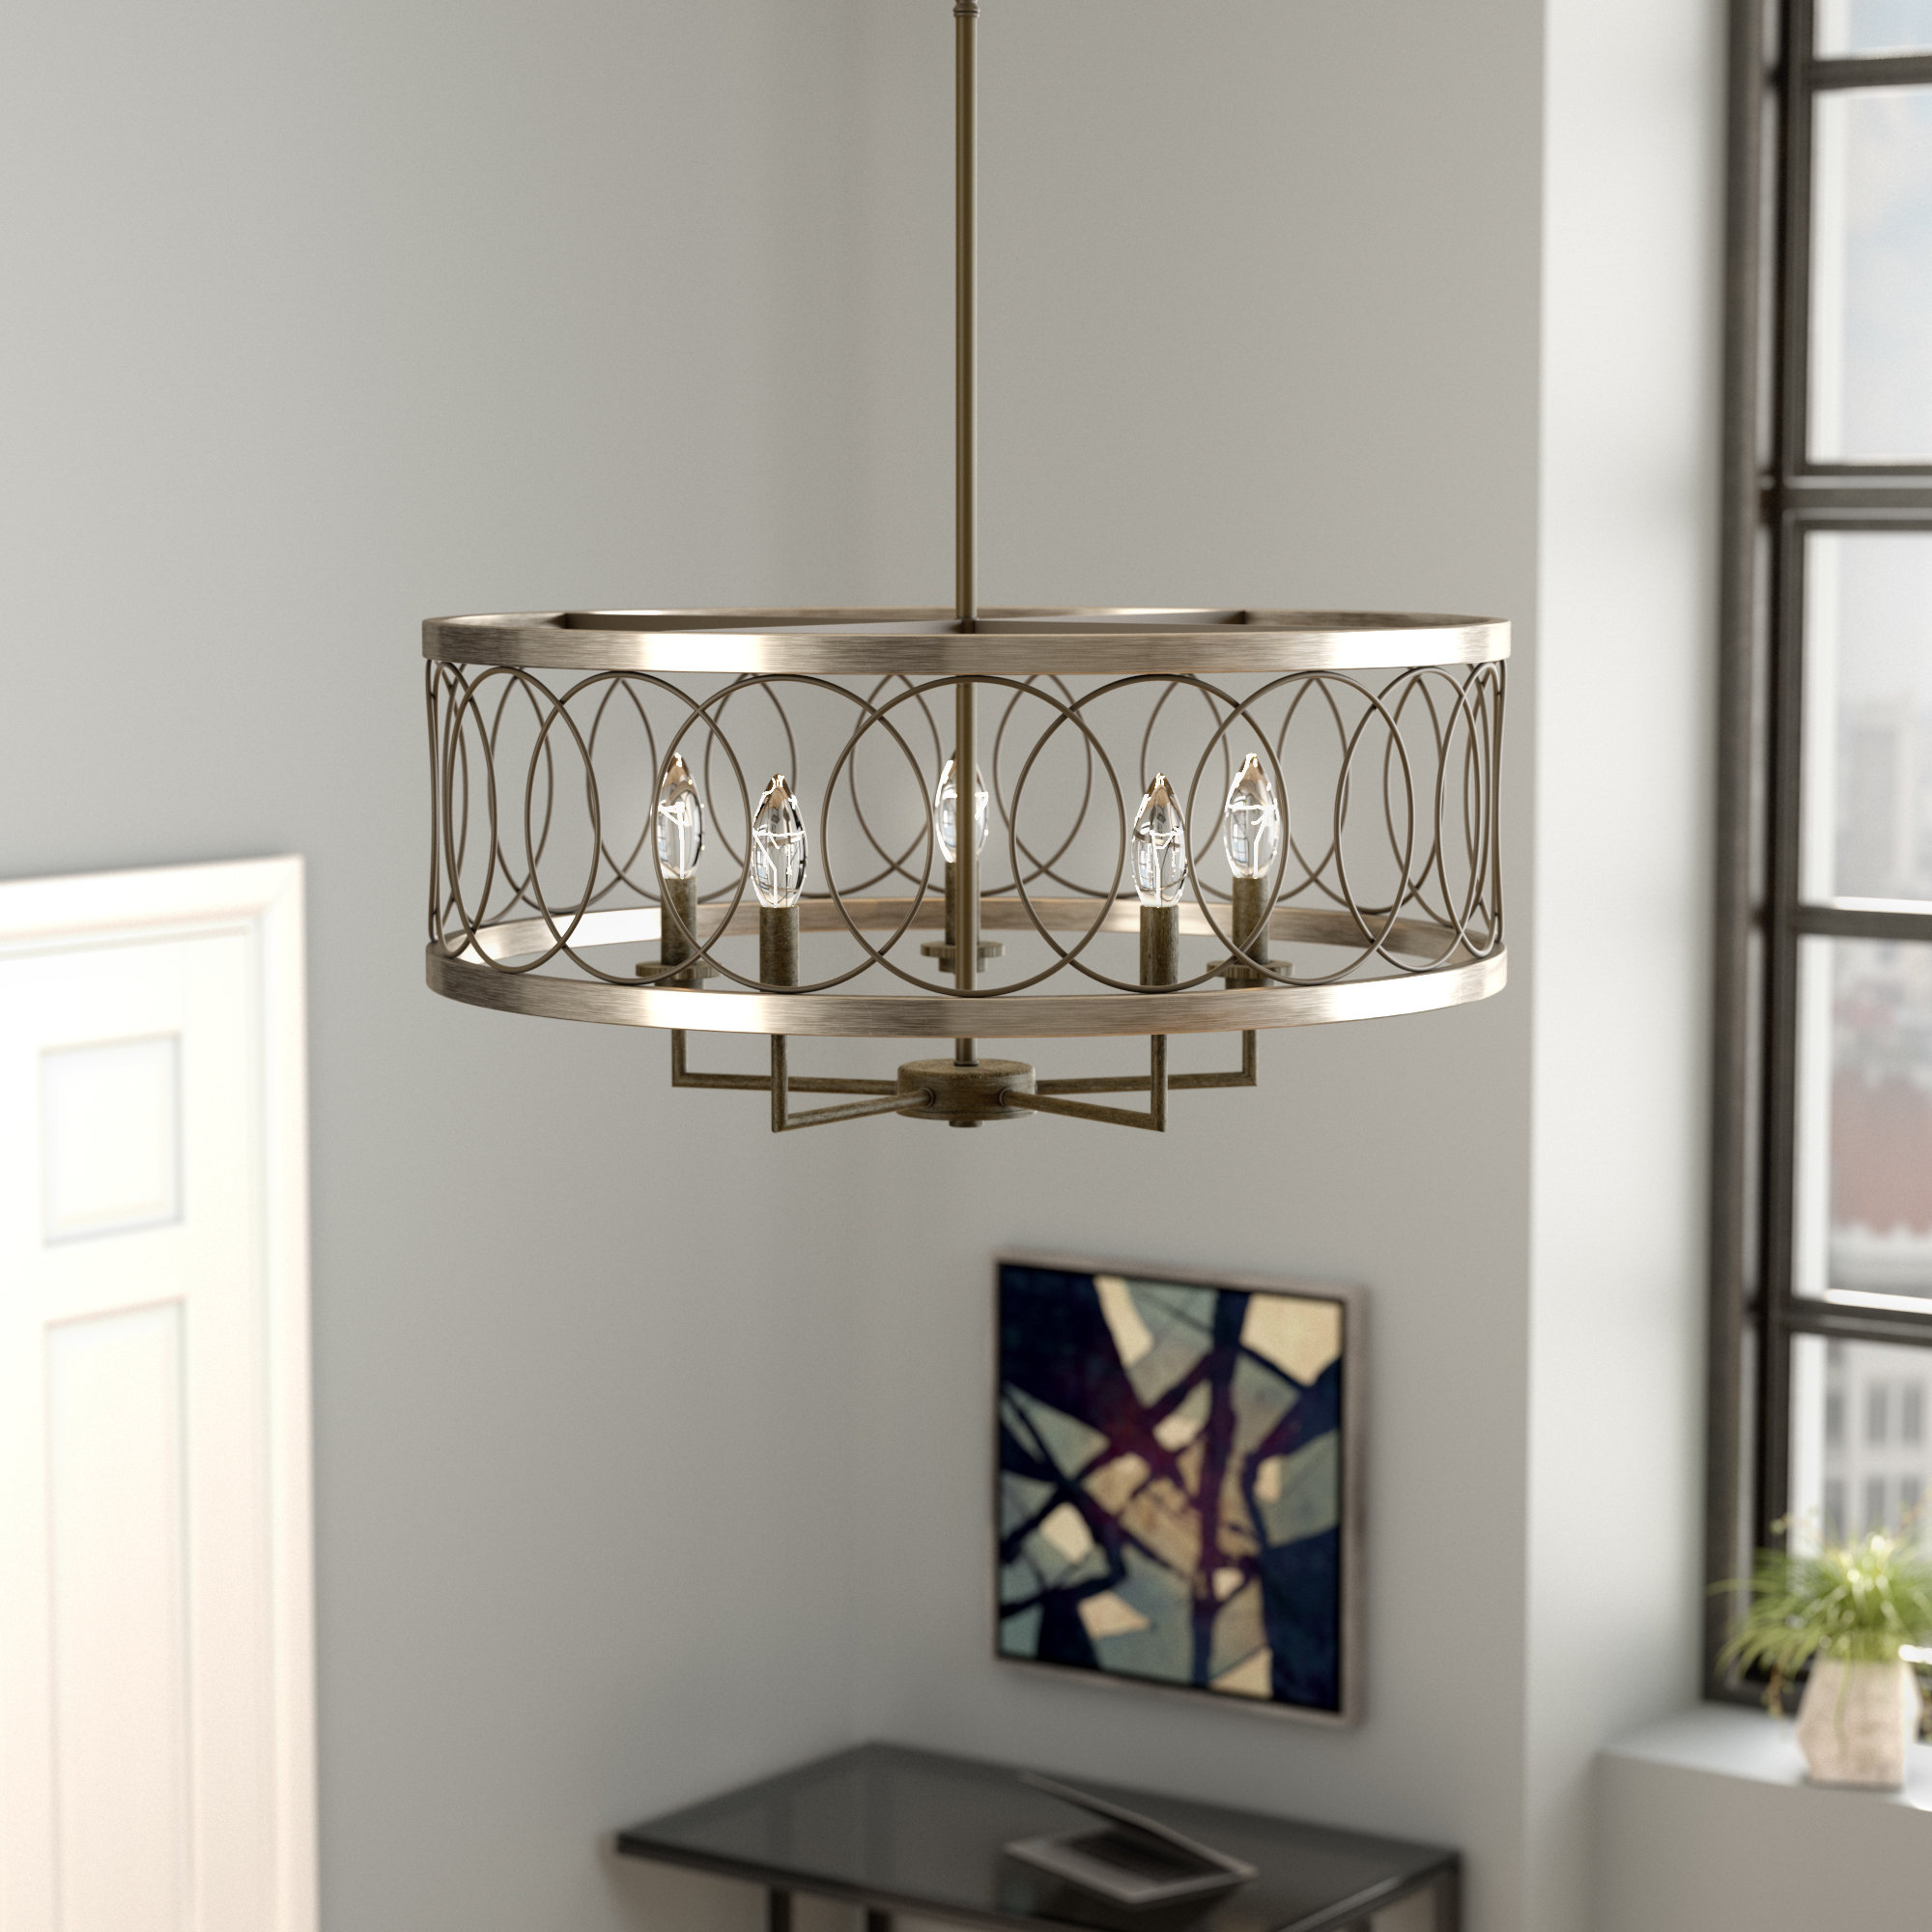 Hermione 5 Light Drum Chandeliers Inside Widely Used Cliffside 5 Light Drum Chandelier (Gallery 9 of 25)